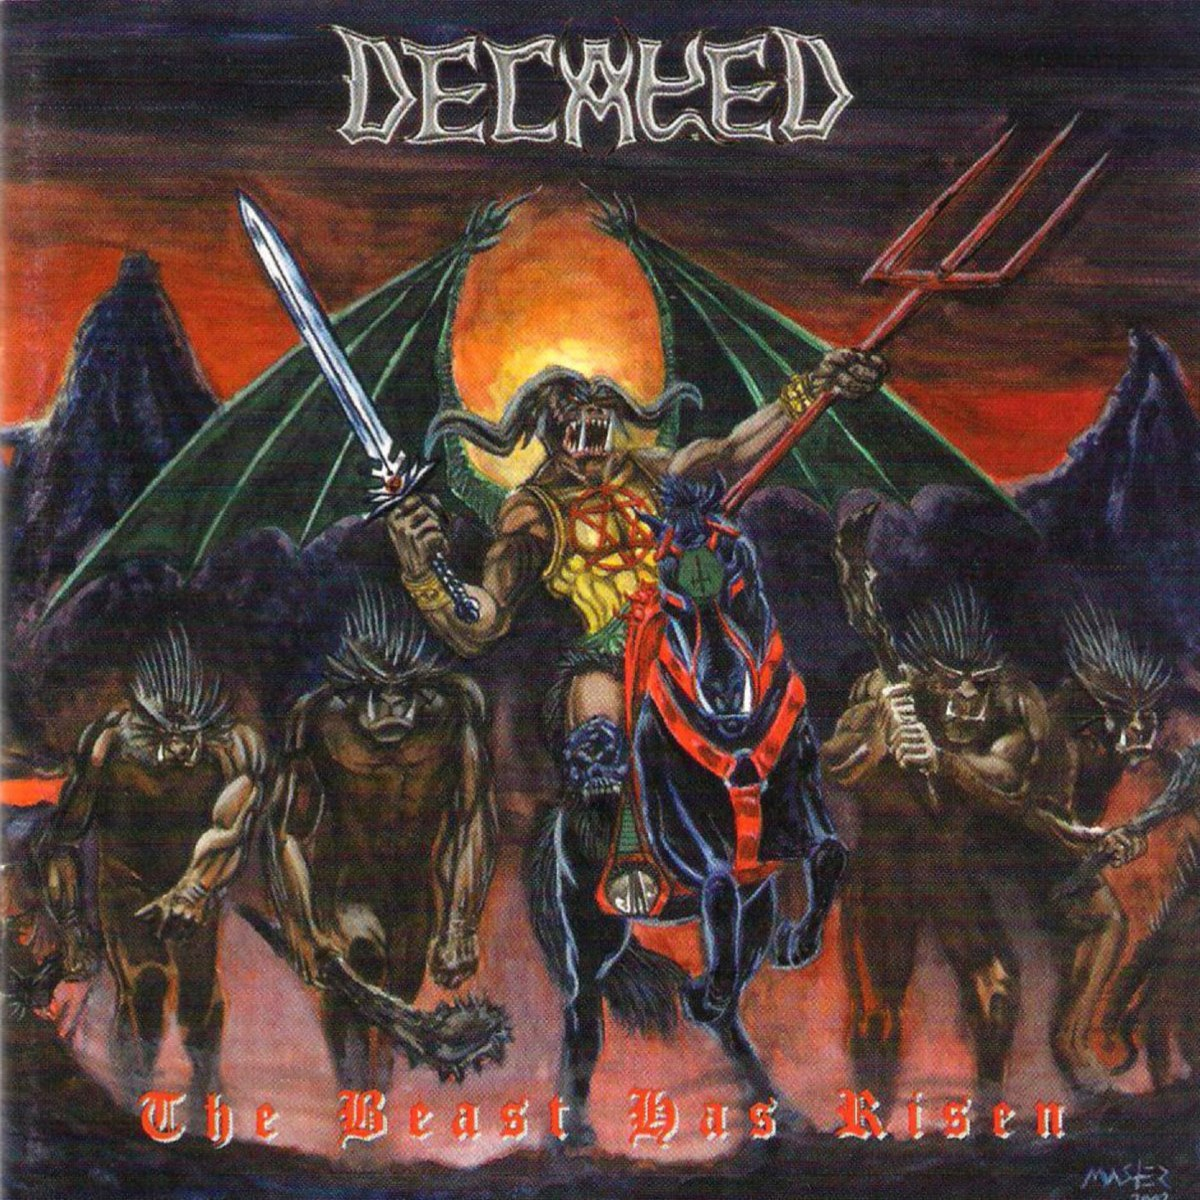 Reviews for Decayed - The Beast Has Risen